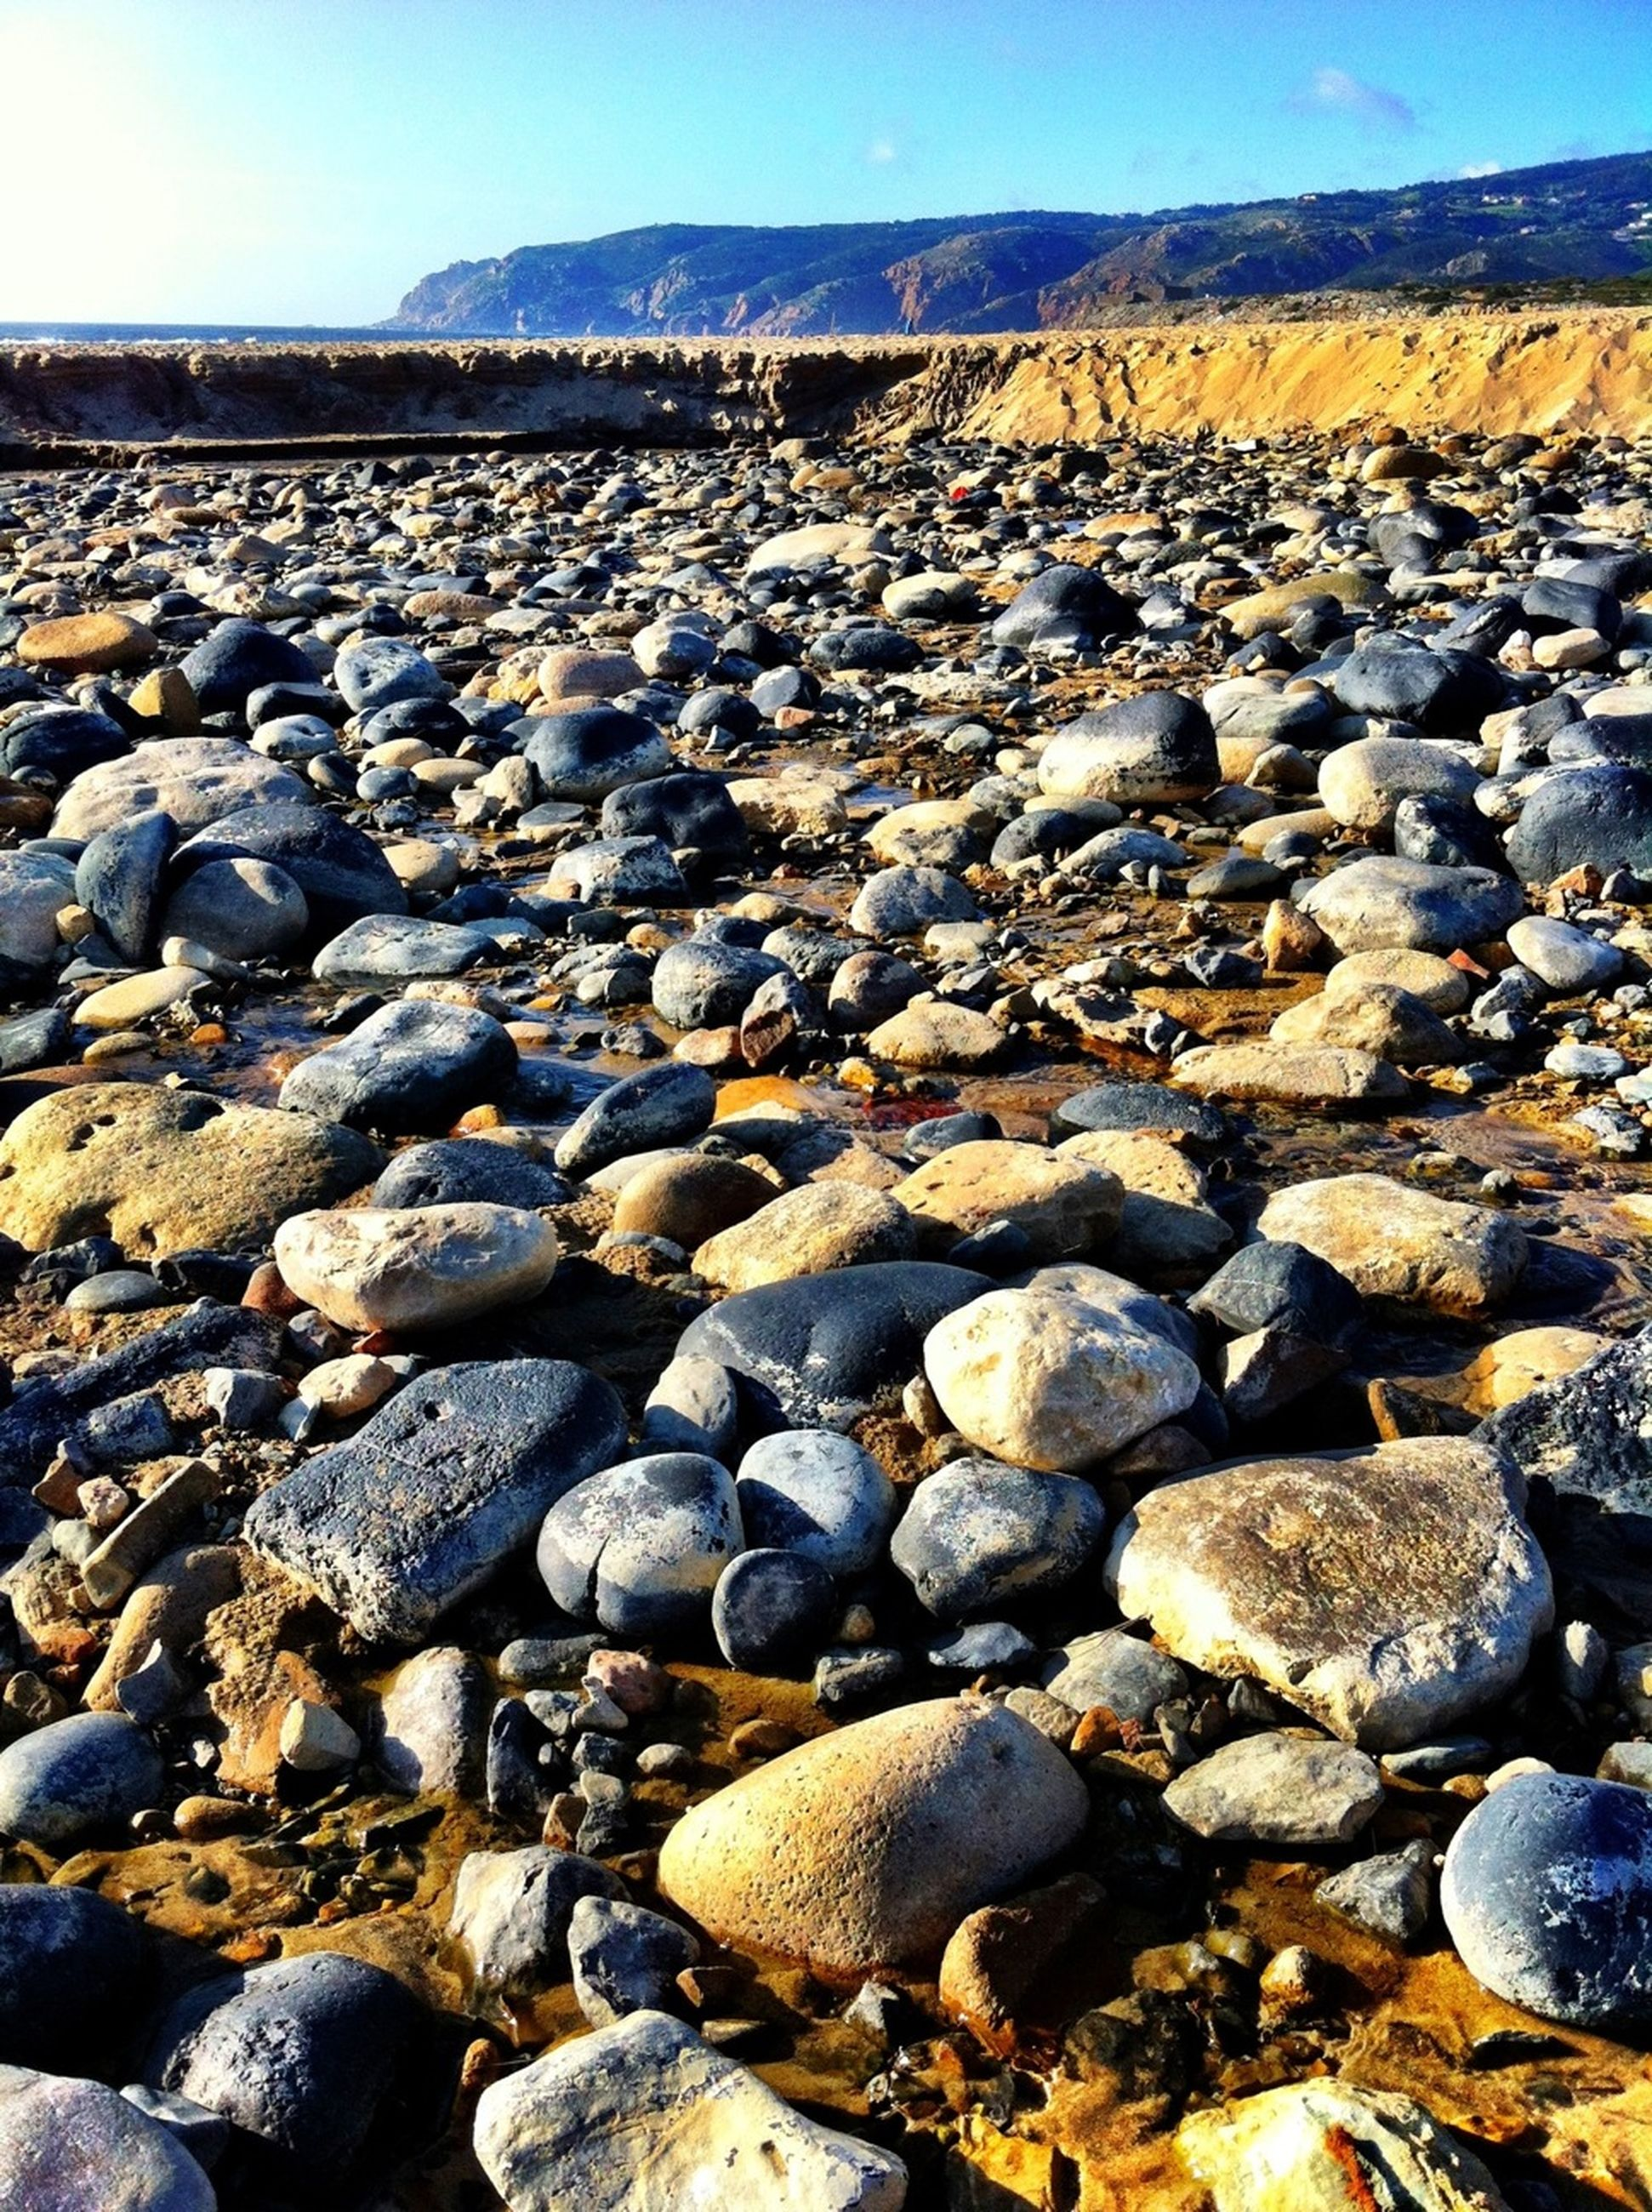 stone - object, pebble, abundance, tranquil scene, tranquility, nature, rock - object, stone, sky, landscape, large group of objects, scenics, surface level, beauty in nature, beach, stack, rock, sunlight, outdoors, day